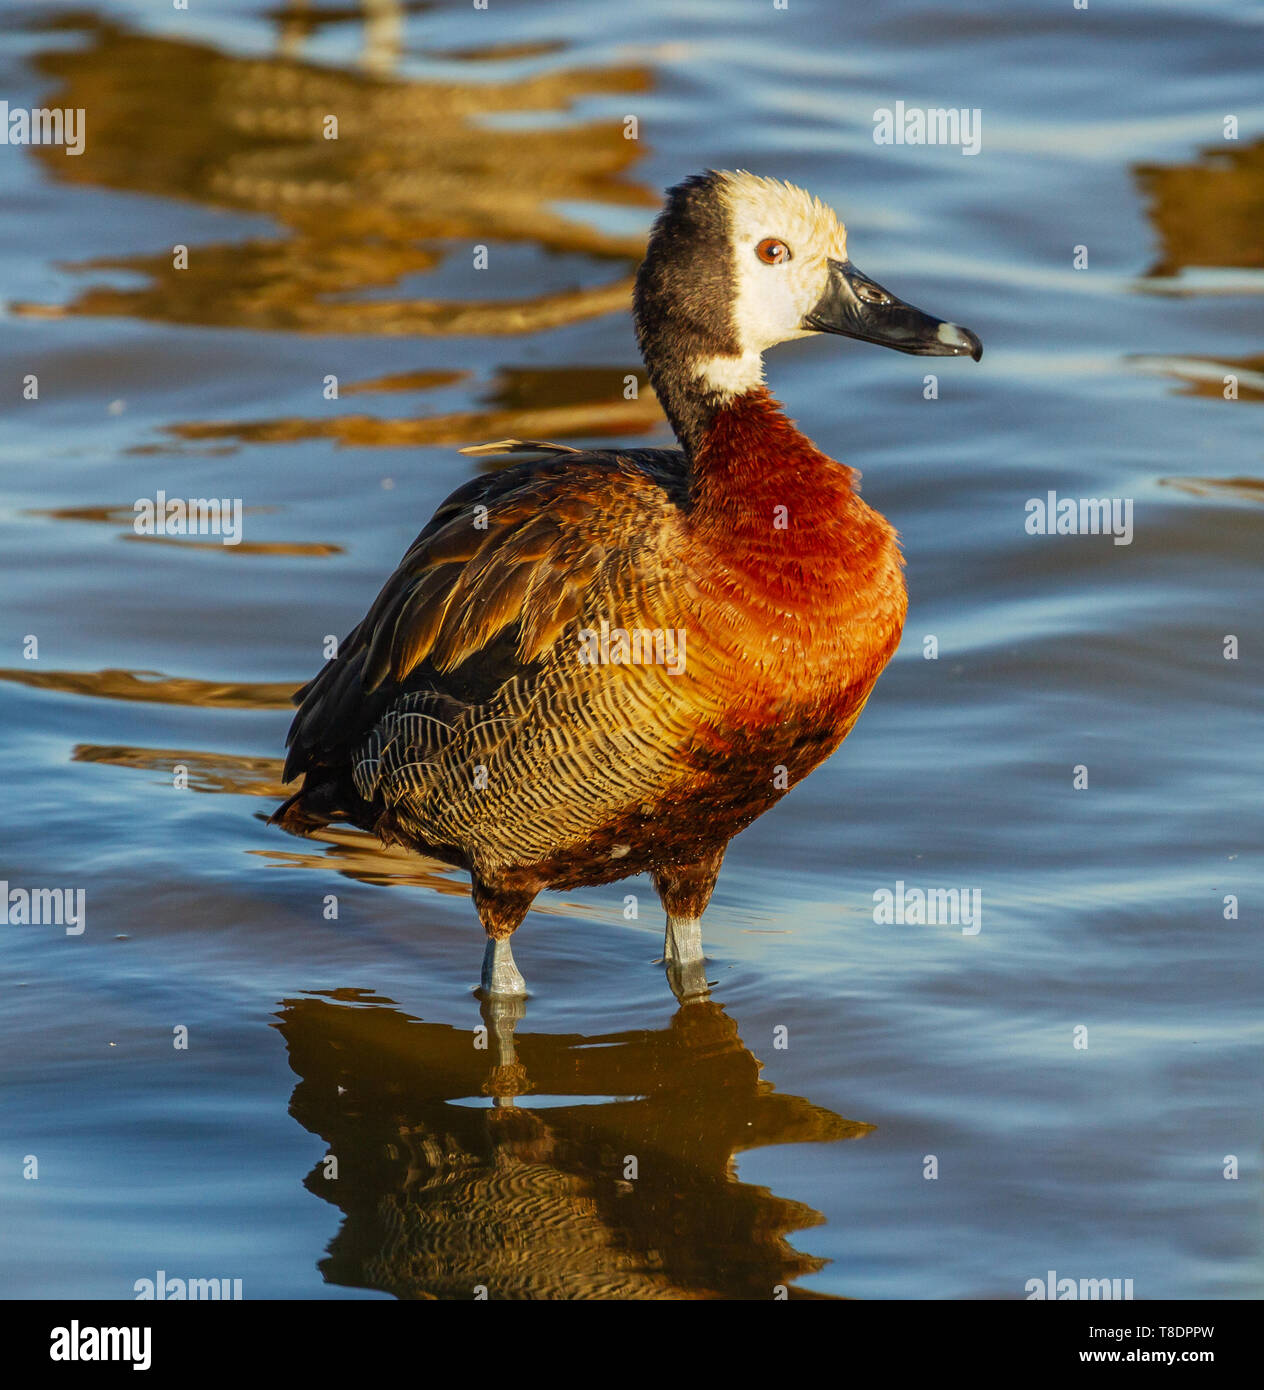 White-faced whistling duck, Dendrocygna viduata, standing in gentle ripple smooth water side view close-up Amboseli National Park Kenya East Africa - Stock Image